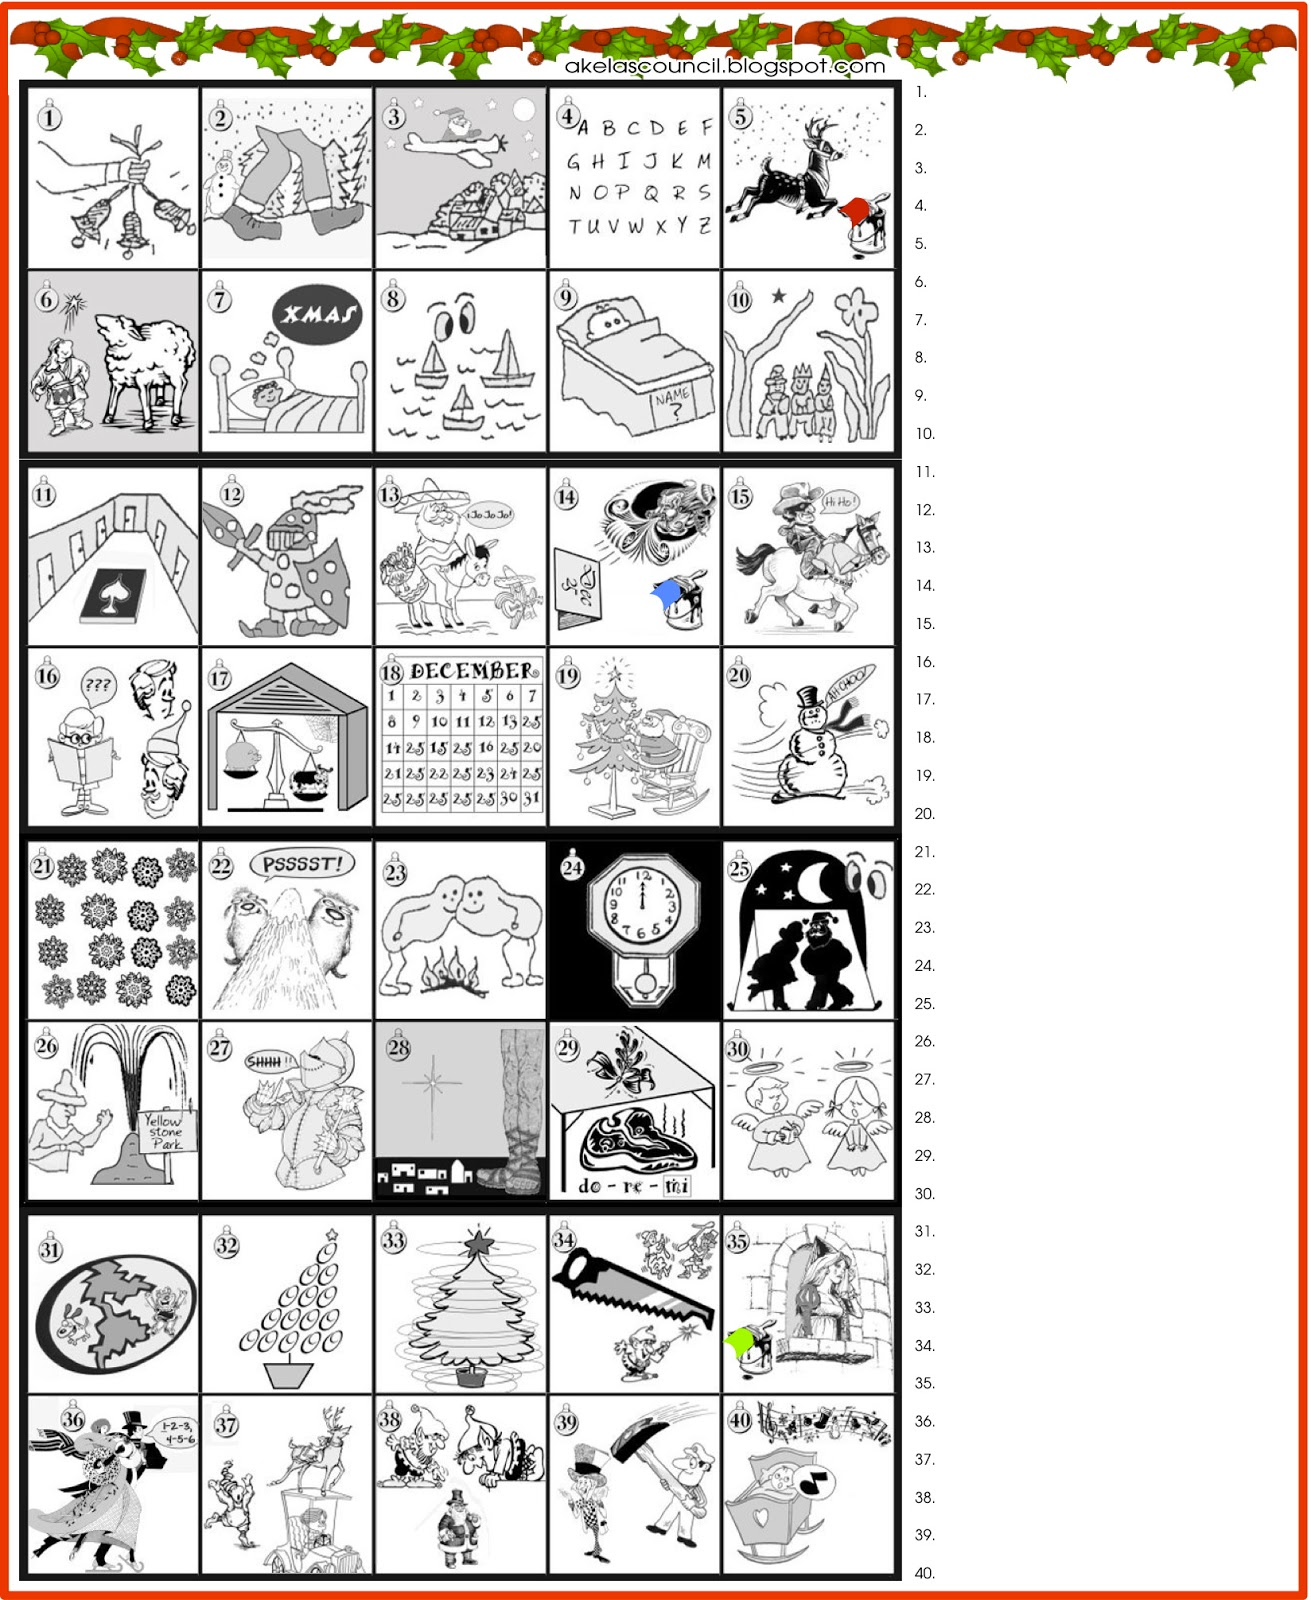 ... We have more word puzzles, and other kinds of printable puzzles on our